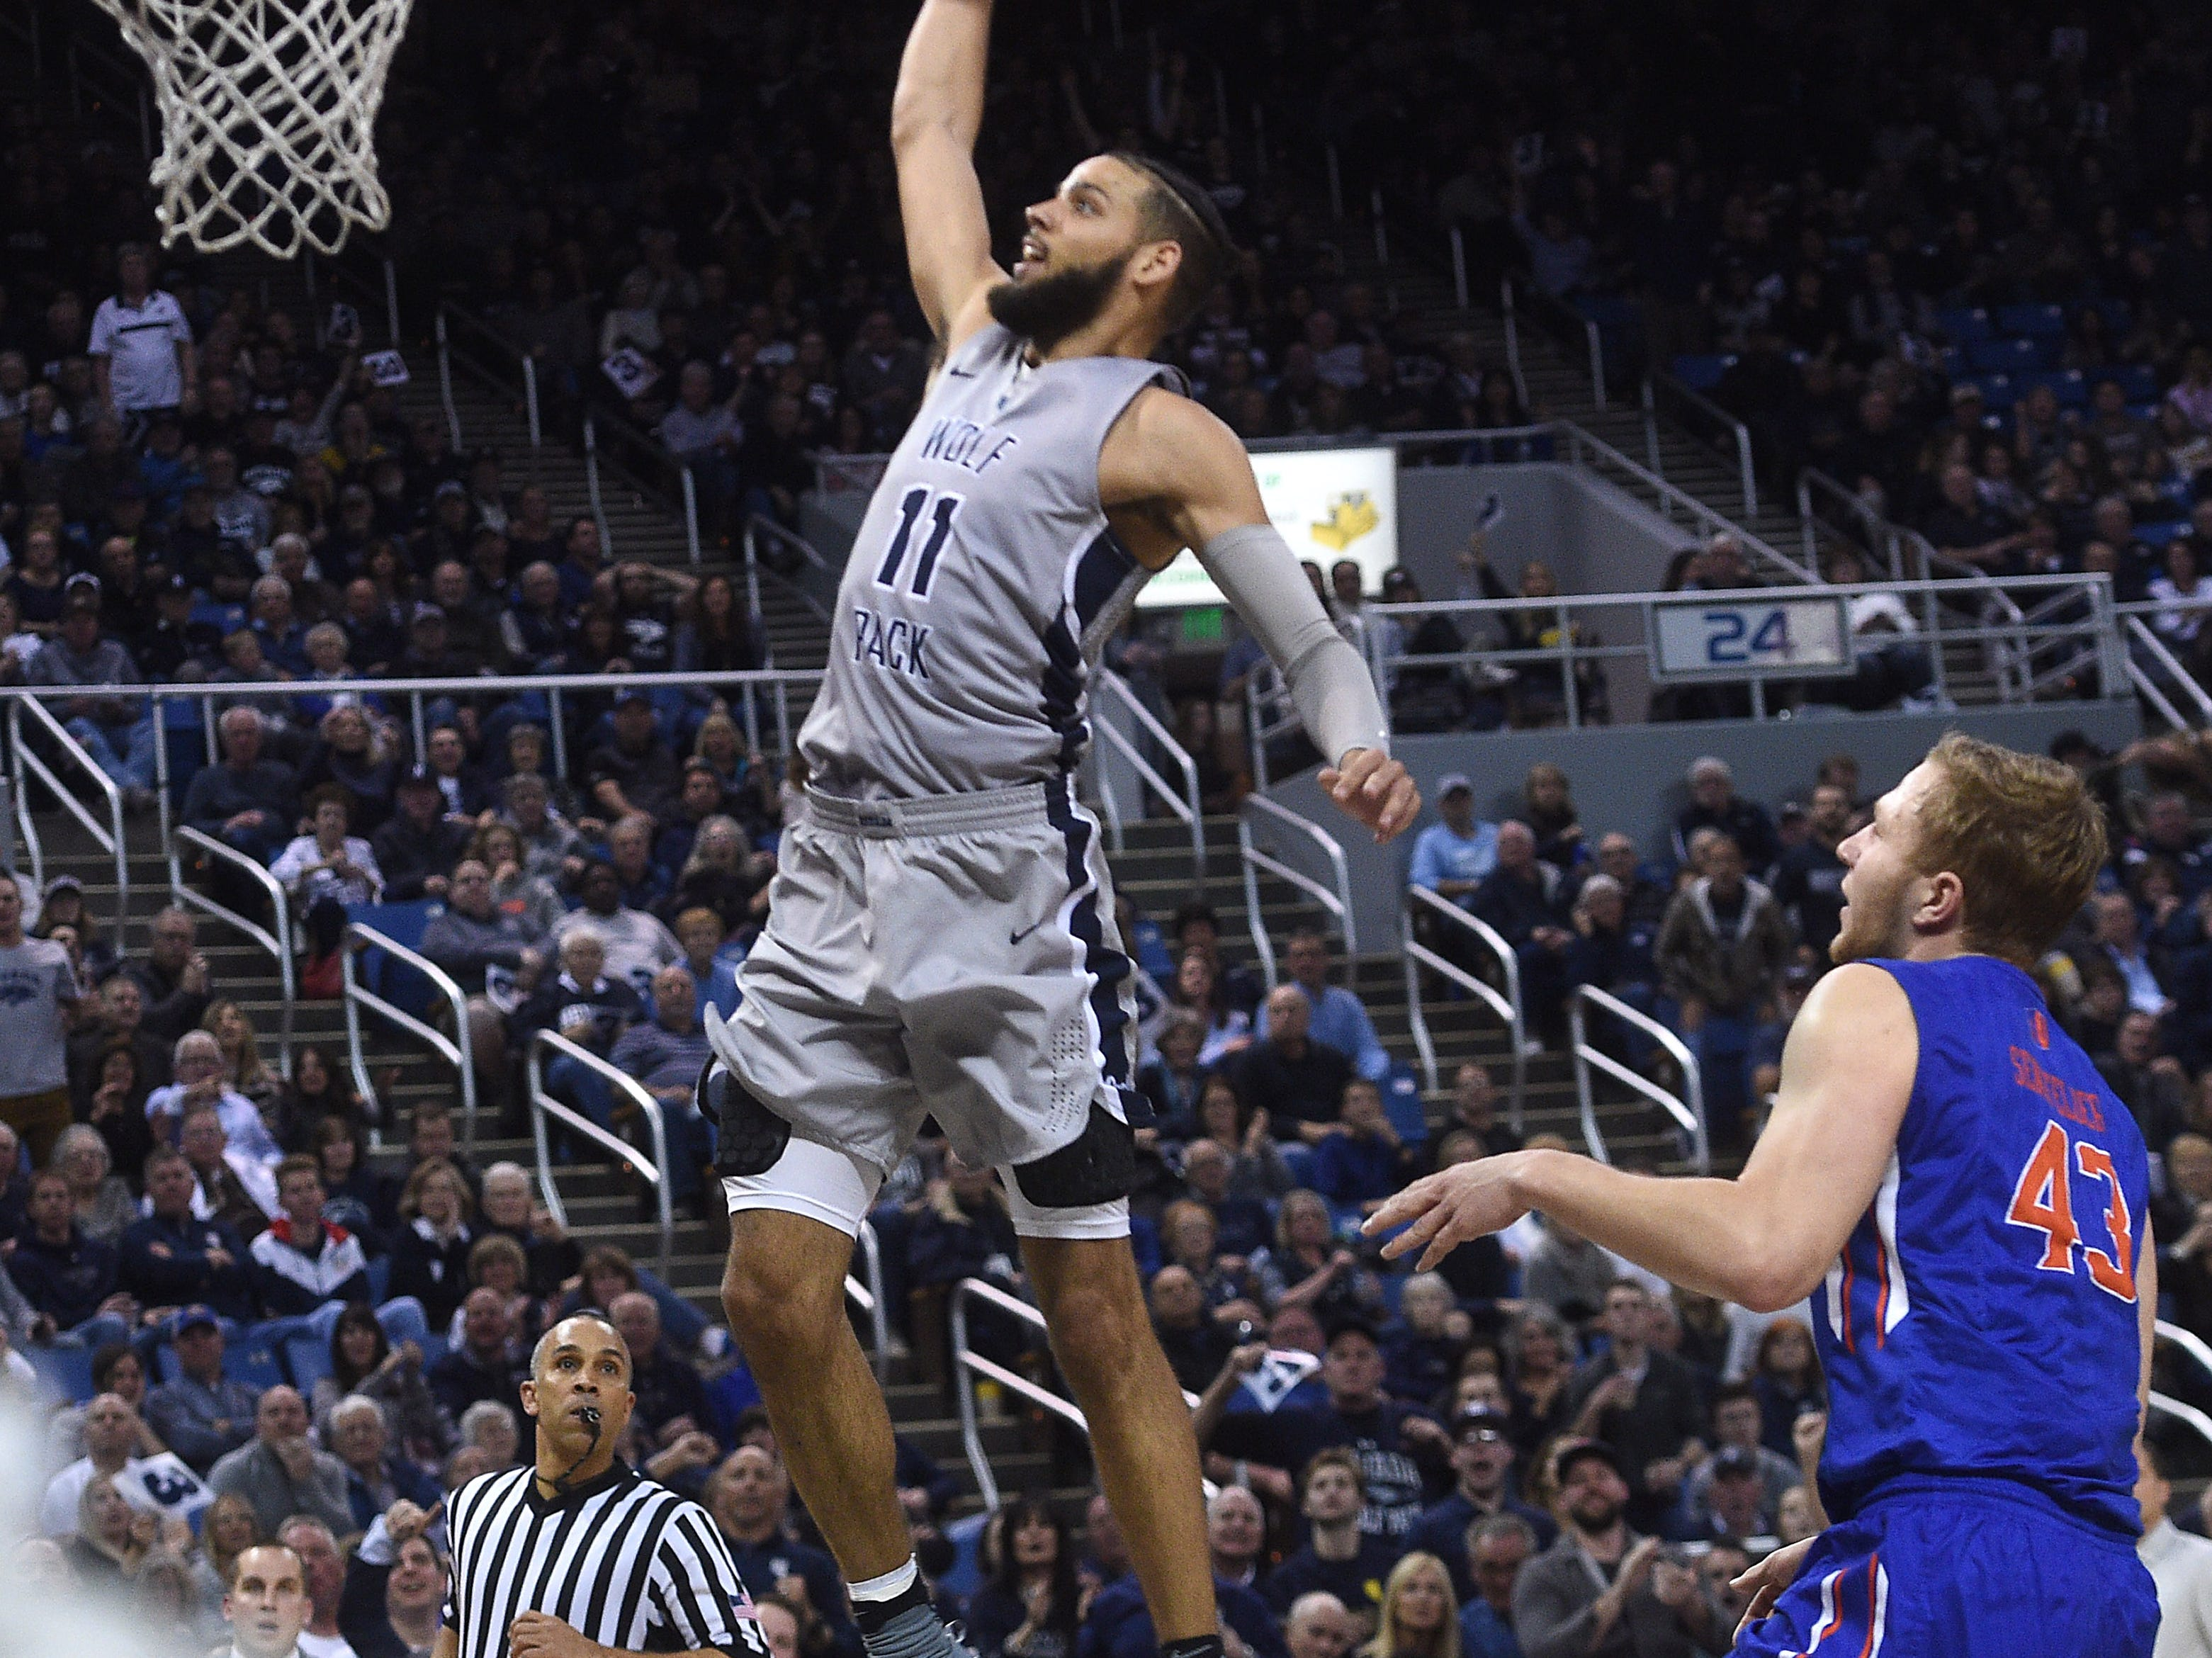 Nevada's Cody Martin (11) dunks while taking on Boise State during their basketball game at Lawlor Events Center in Reno on Jan. 20, 2018.